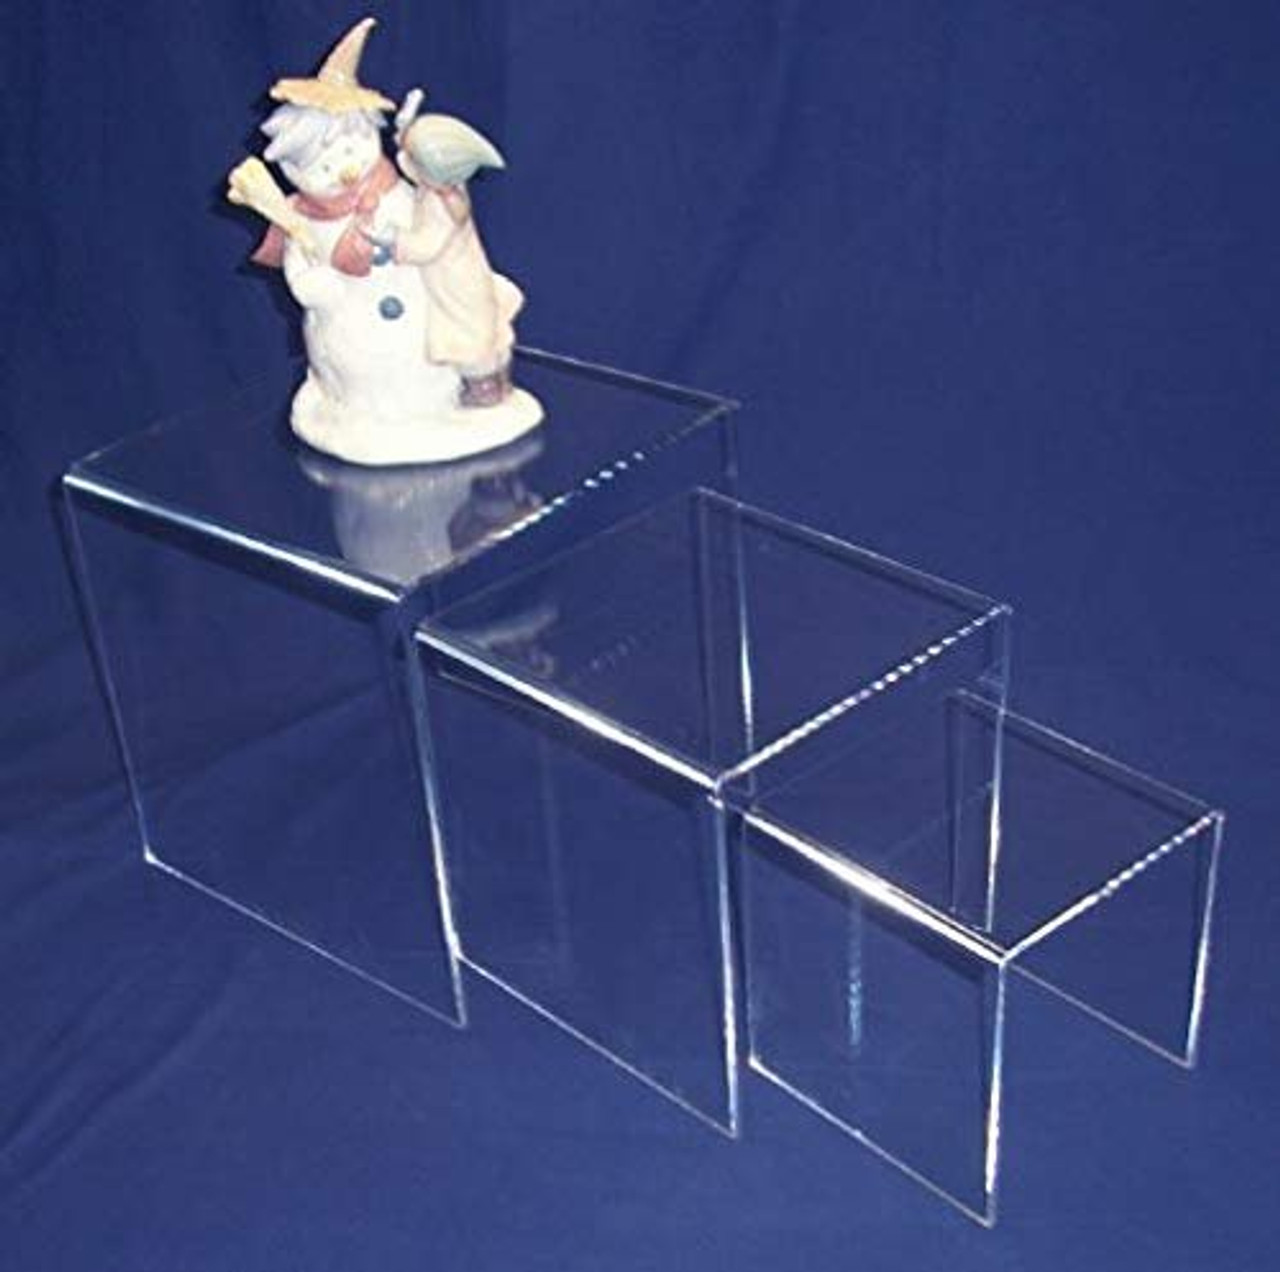 3 Piece Square Acrylic Riser Set, Clear, 2 Sets Included